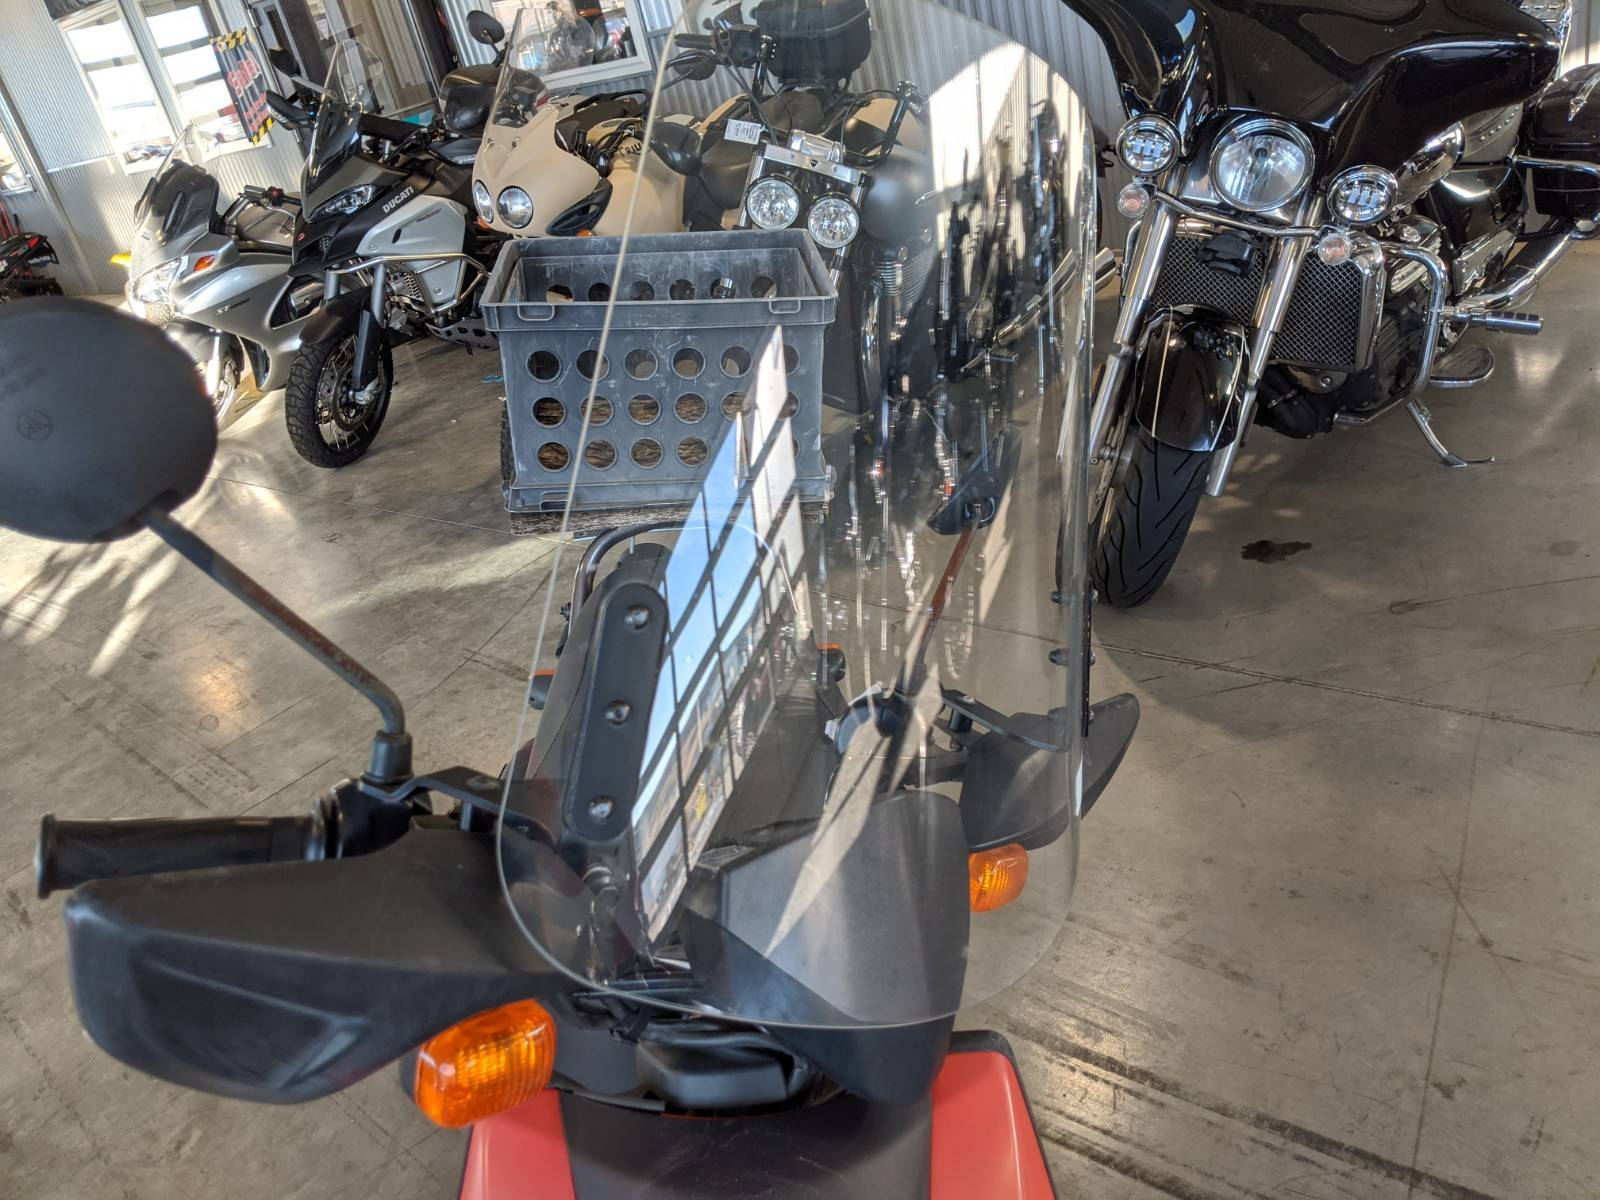 2014 Yamaha Zuma 125 in Rapid City, South Dakota - Photo 10